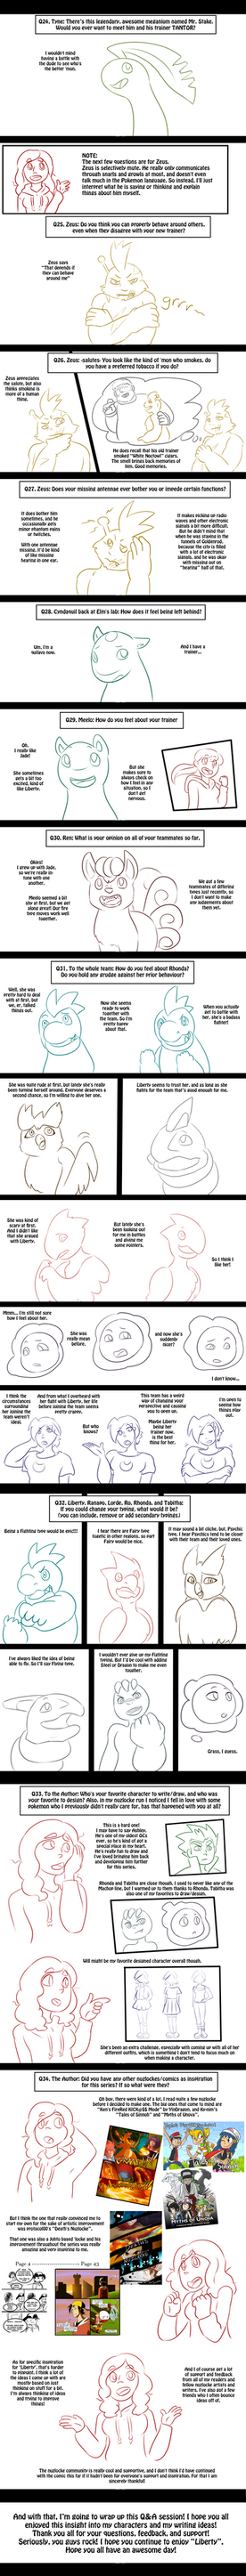 Liberty Q+A Comic part 3 by jadethestone